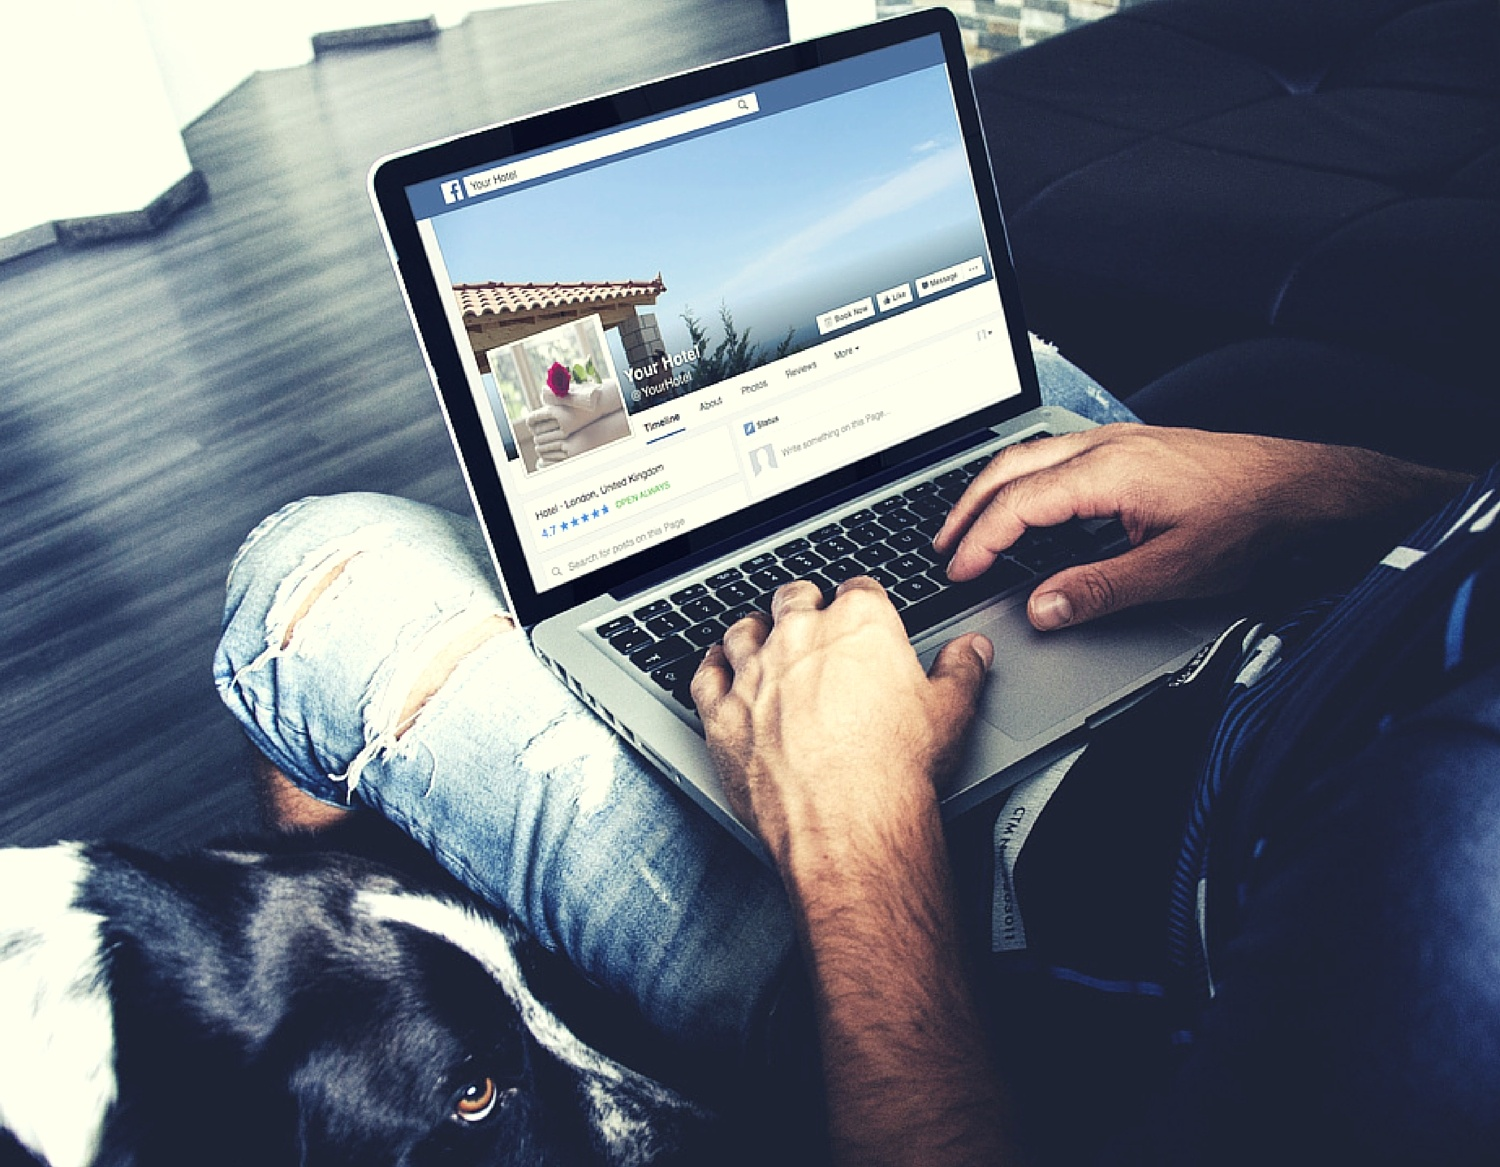 Facebook features hoteliers need to know about